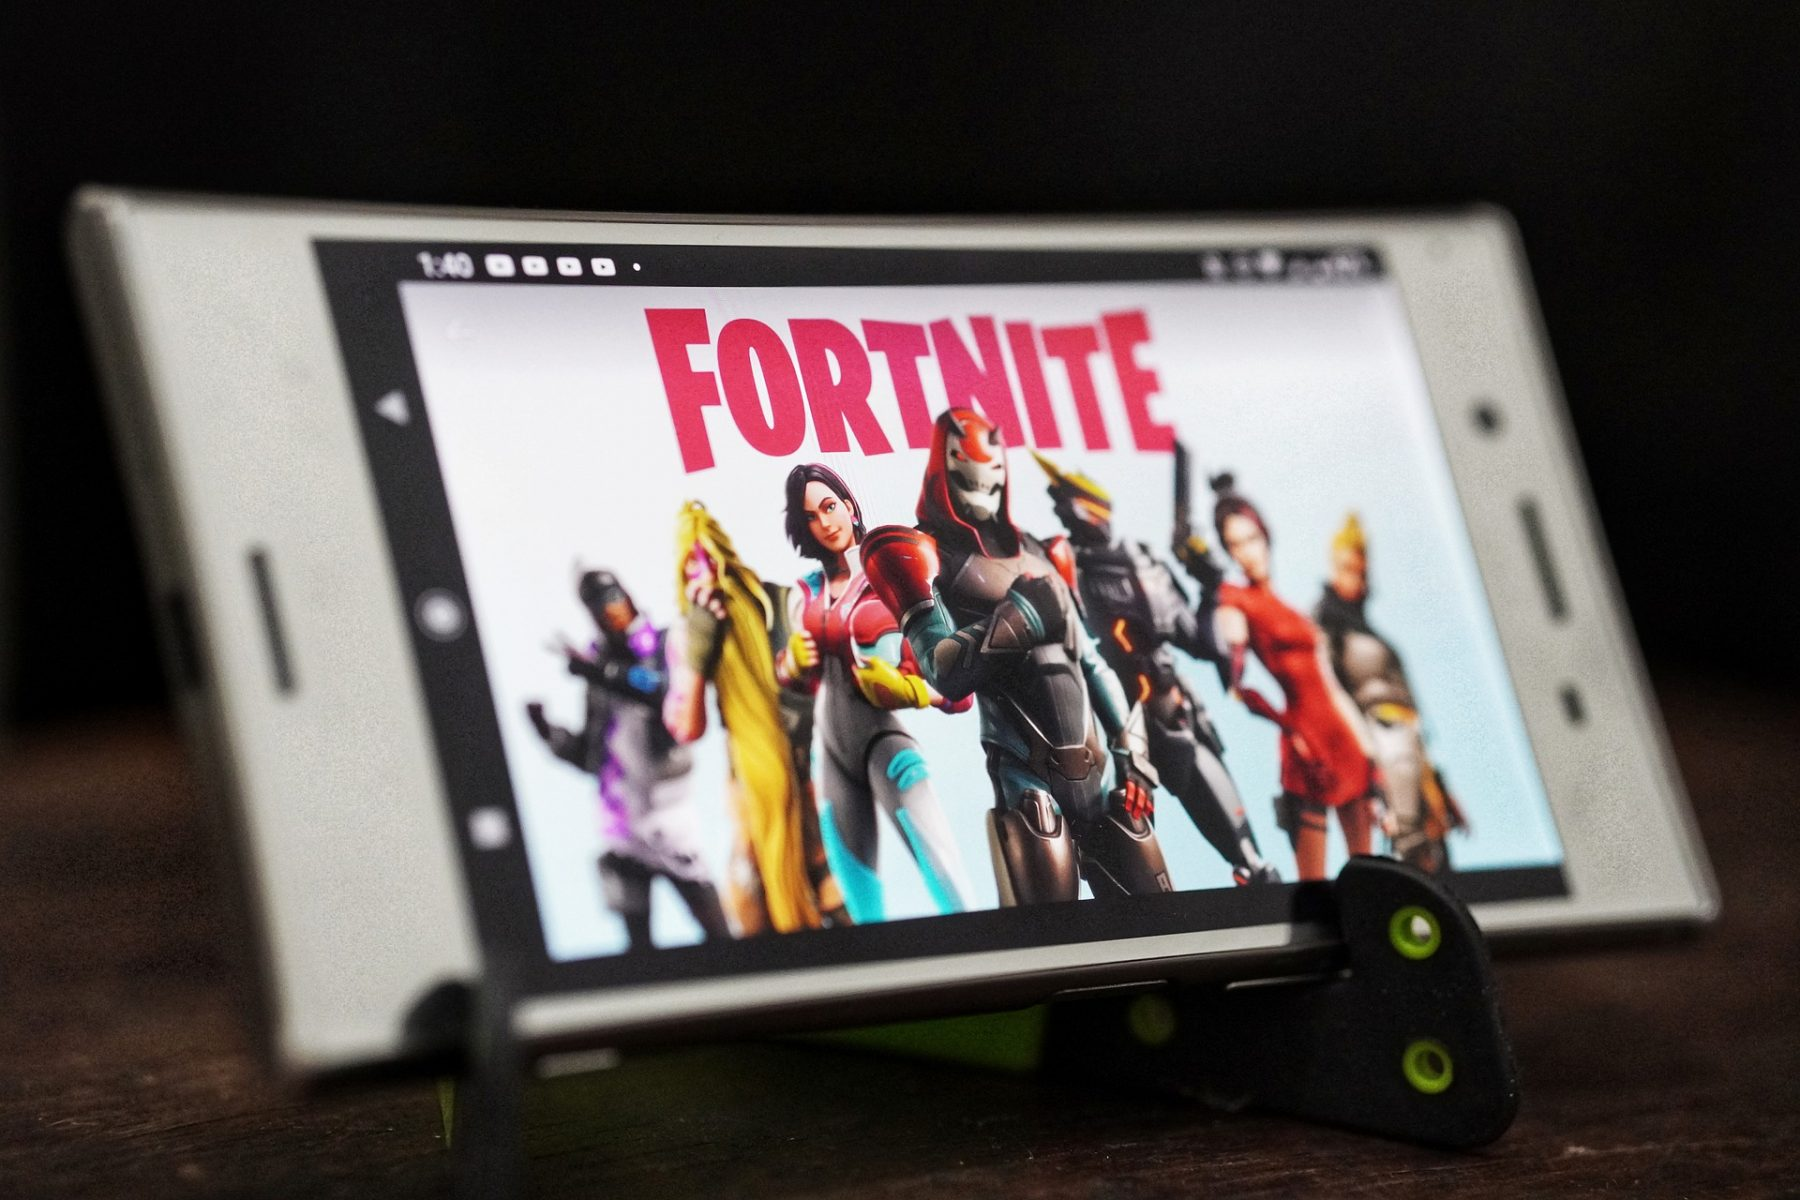 Fortnite playing on a phone